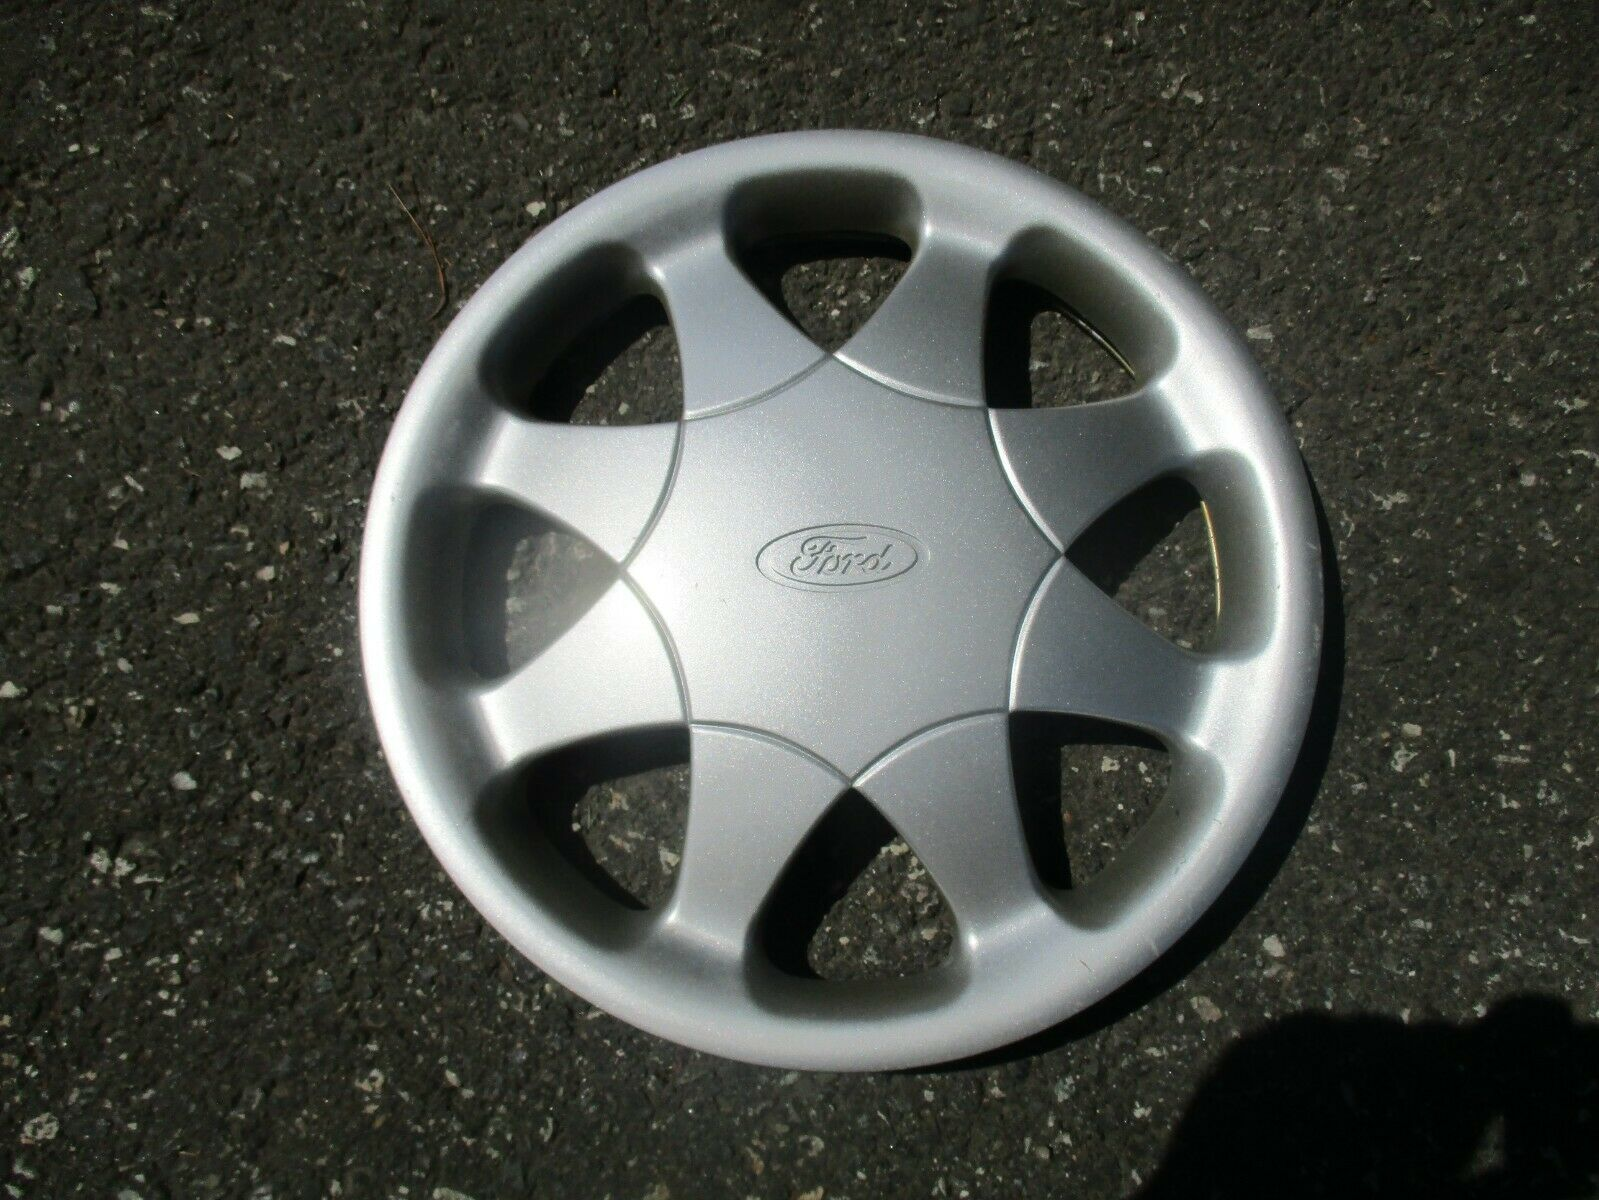 genuine 1996 to 1998 Ford Taurus 15 inch hubcap wheel cover